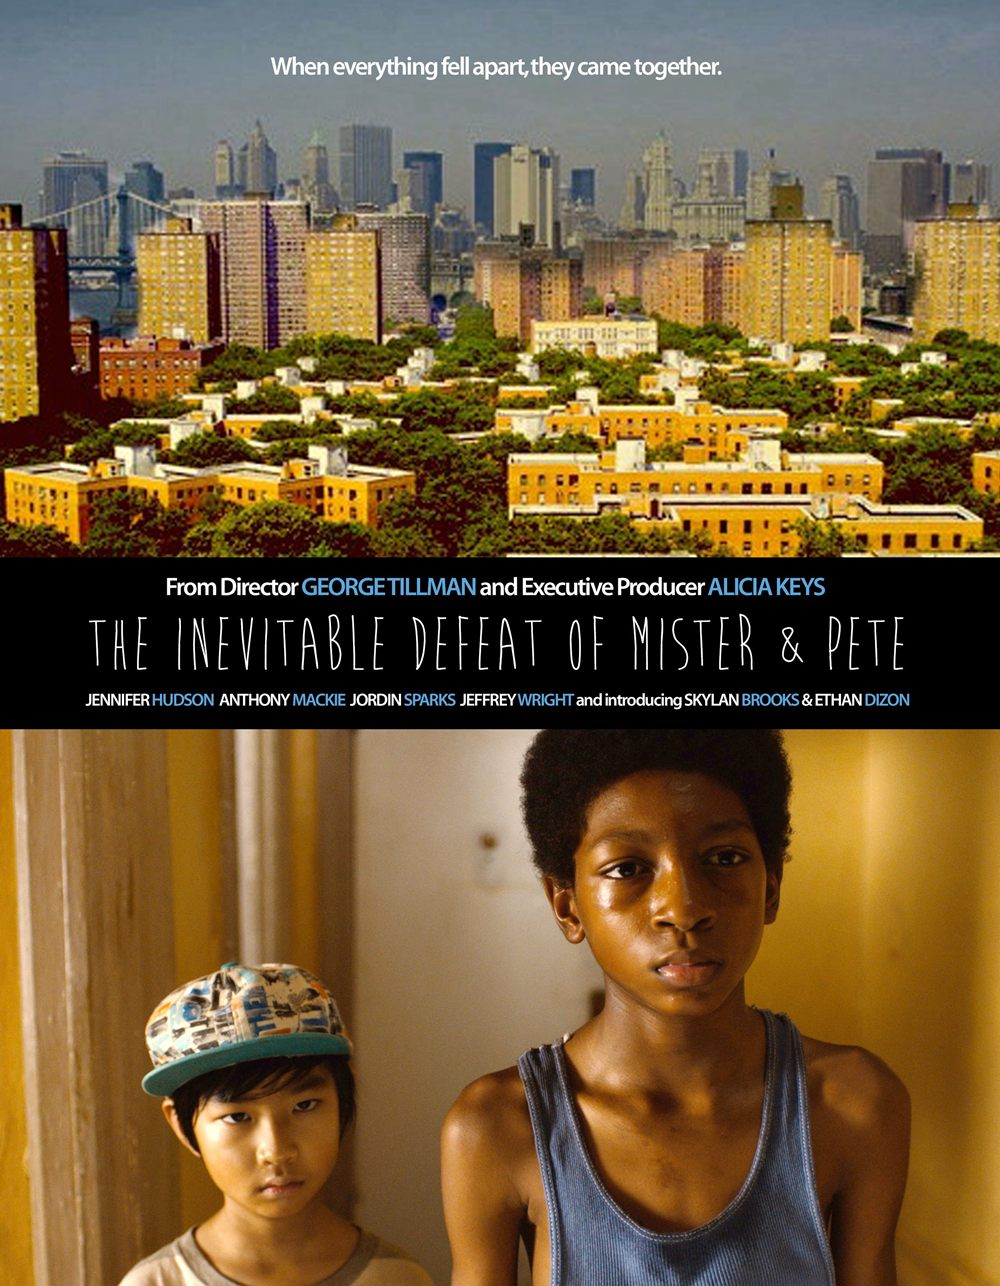 THE INEVITABLE DEFEAT OF MISTER AND PETE Trailer Skylan Brooks